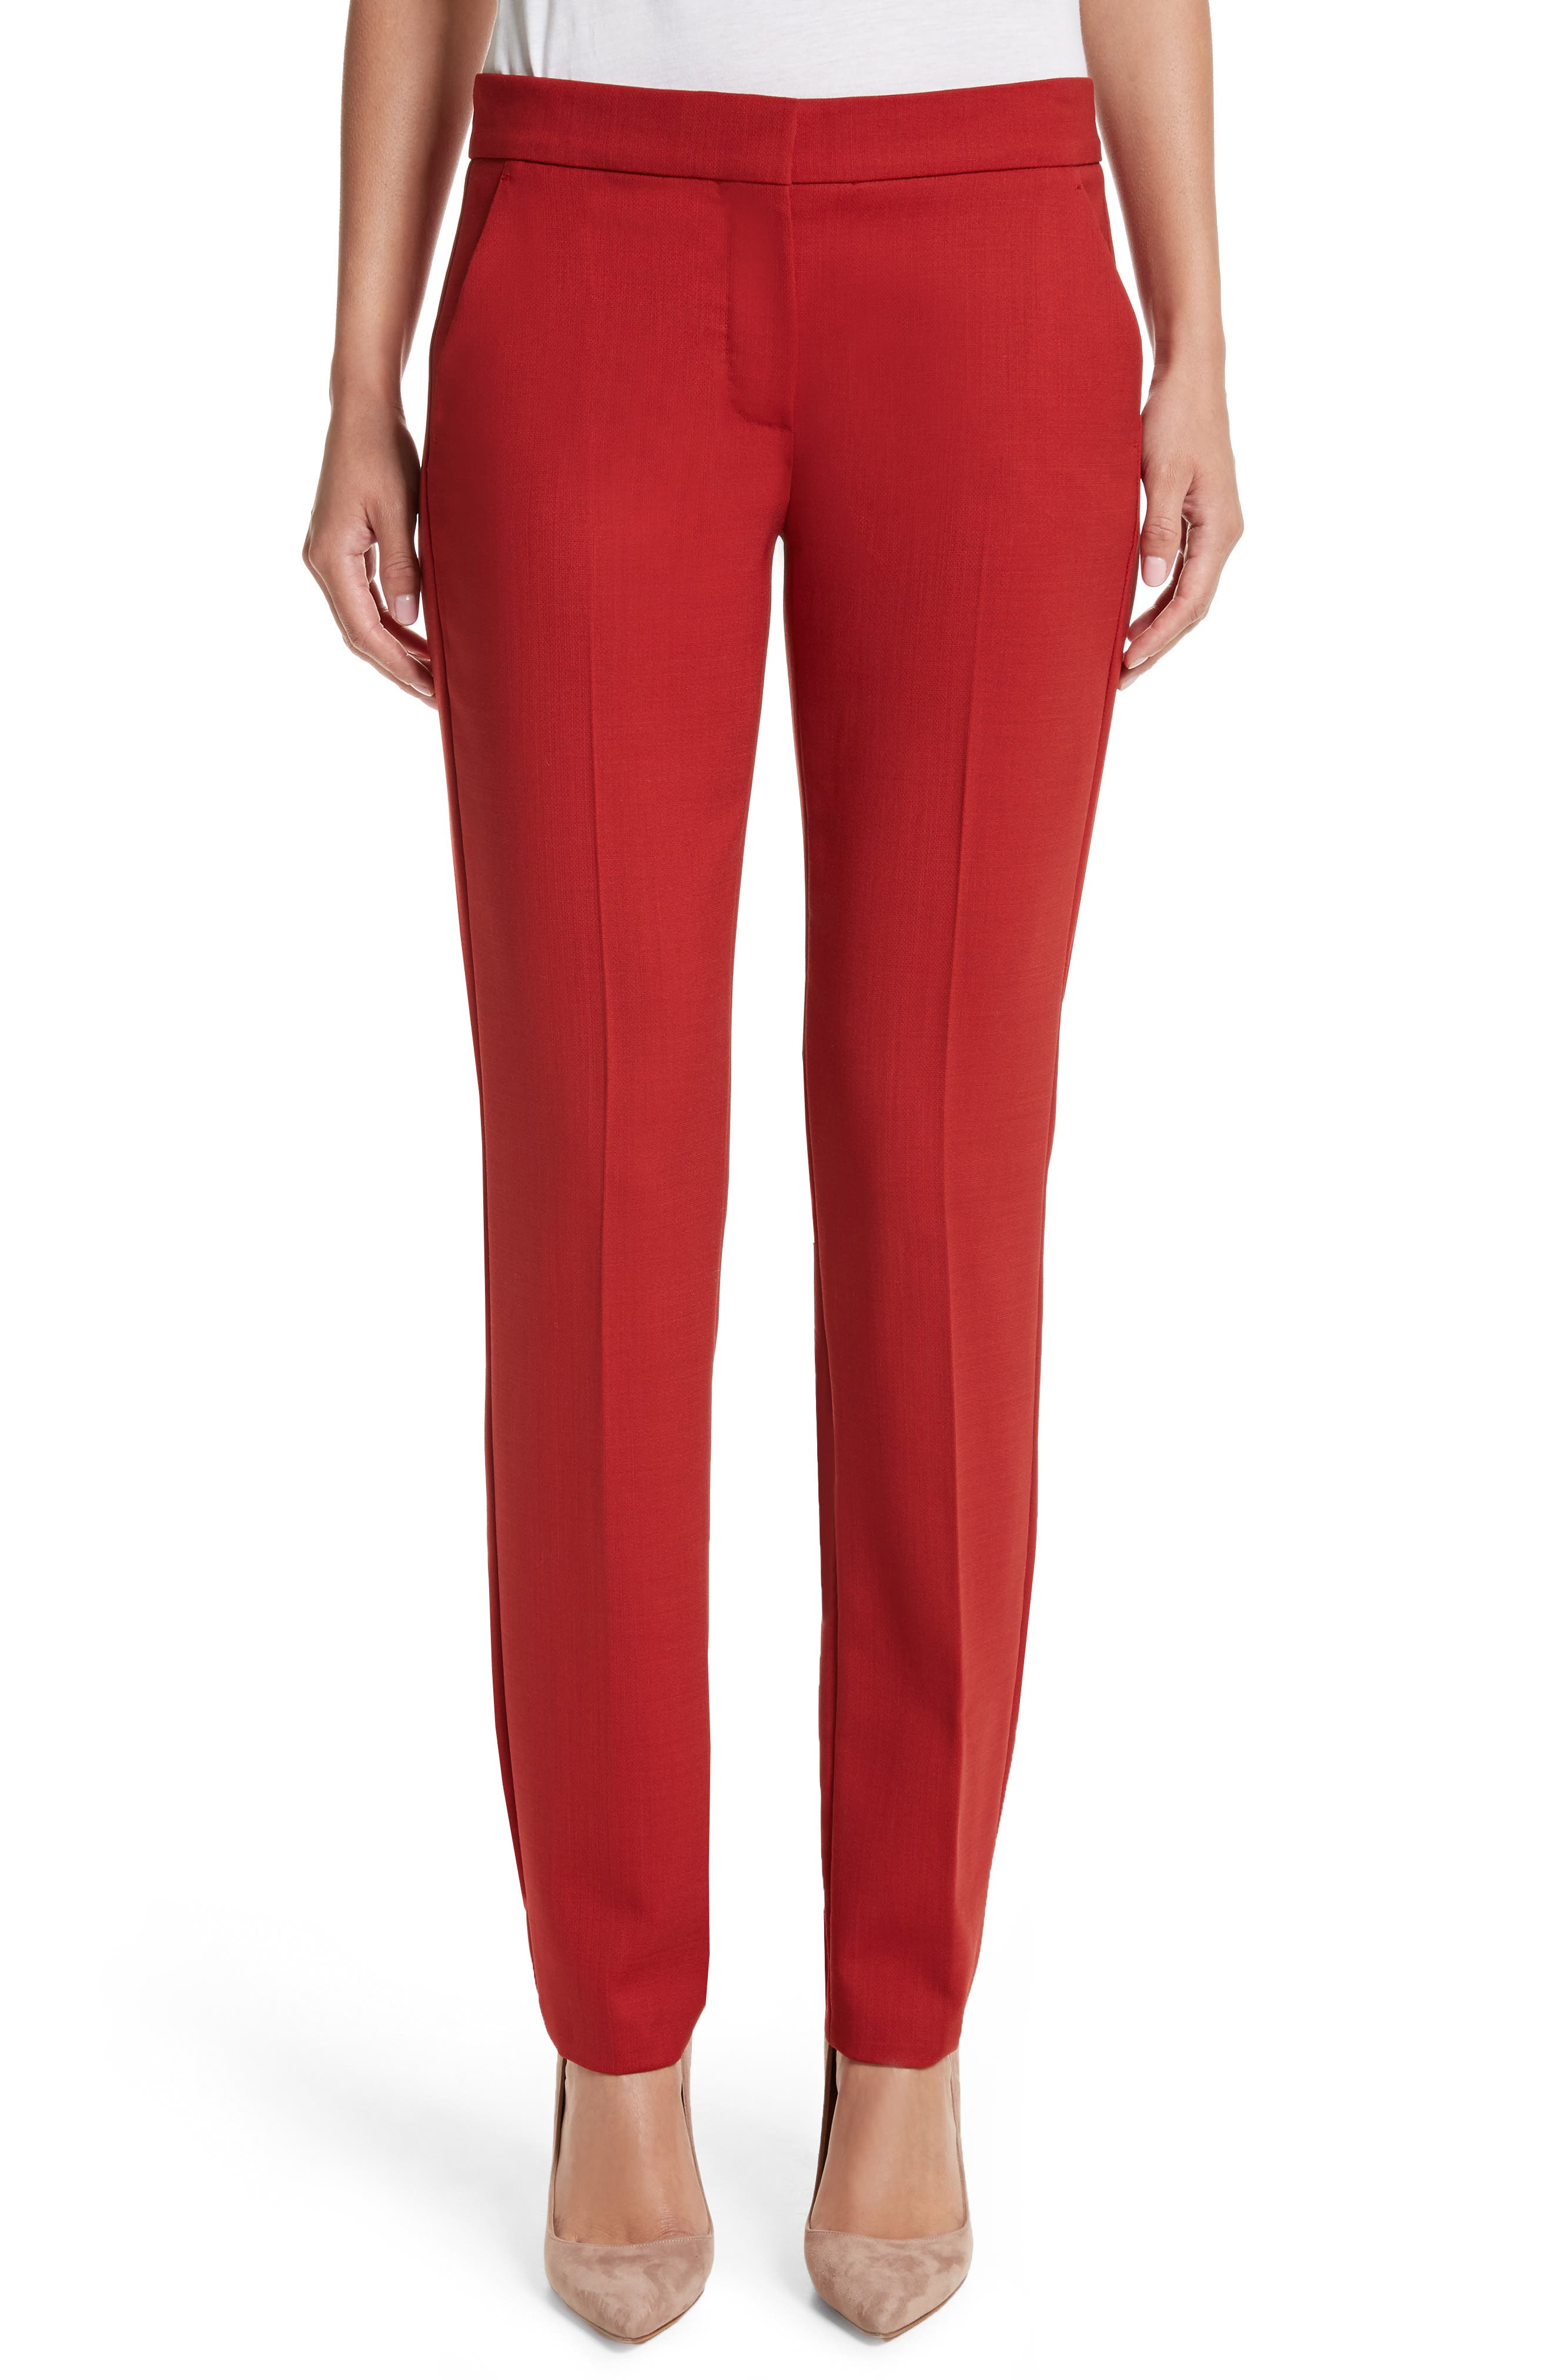 Oscuro Stretch Wool Pants,                         Main,                         color, 614